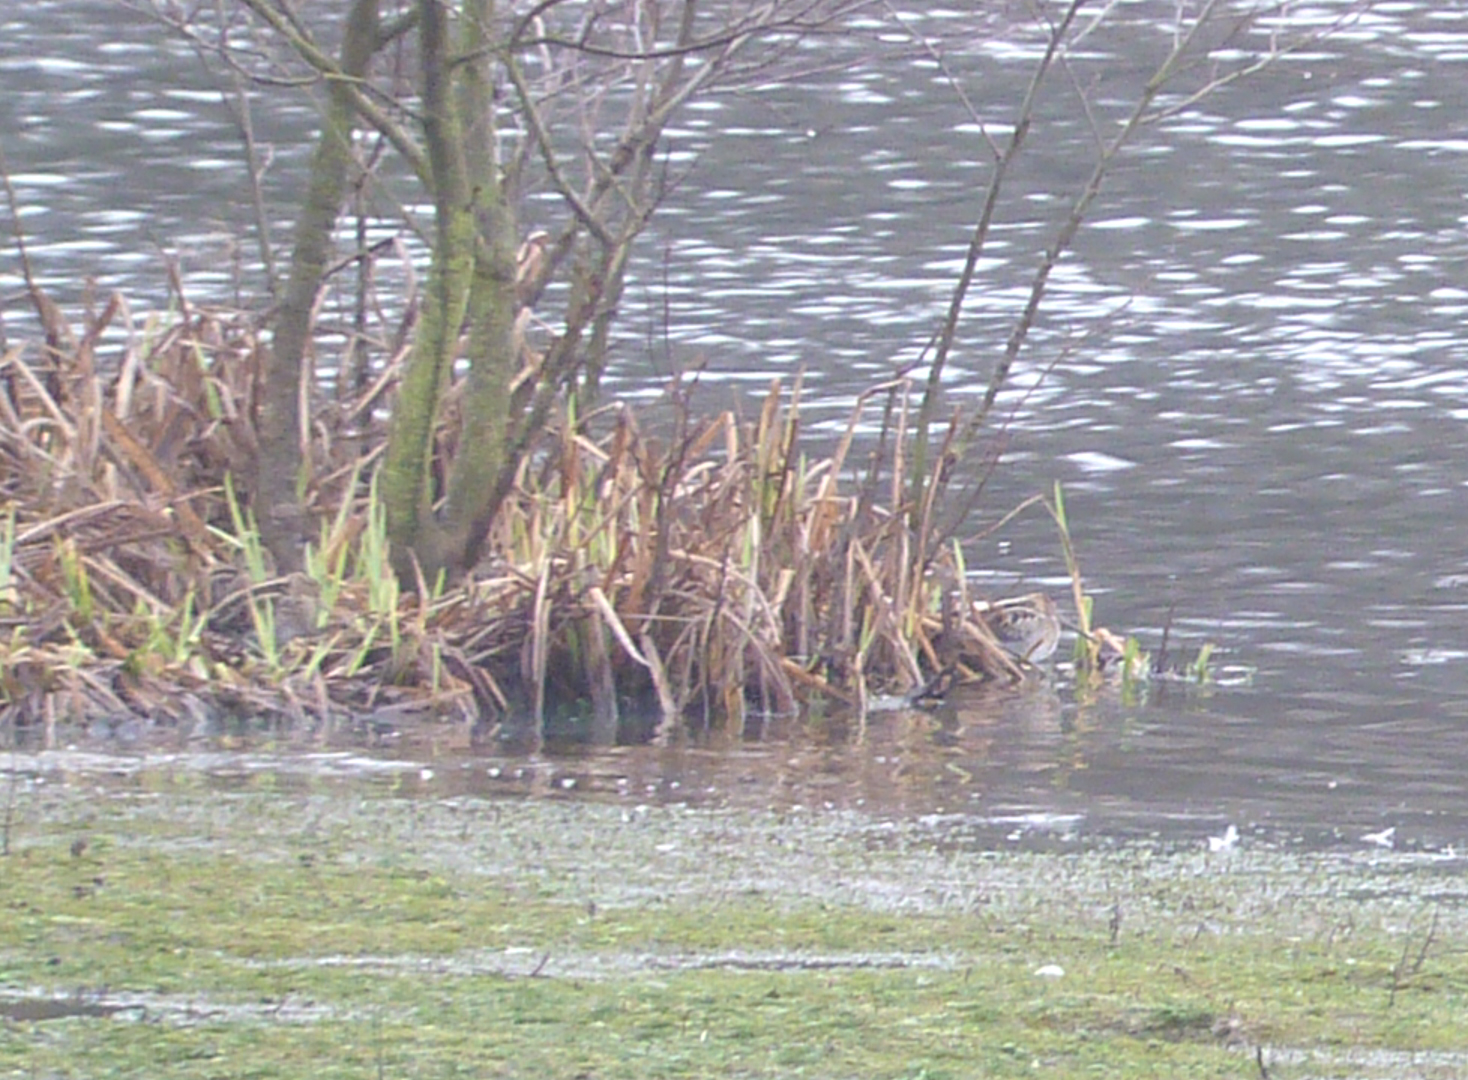 Cryptic Snipe - there are four in the photograph!